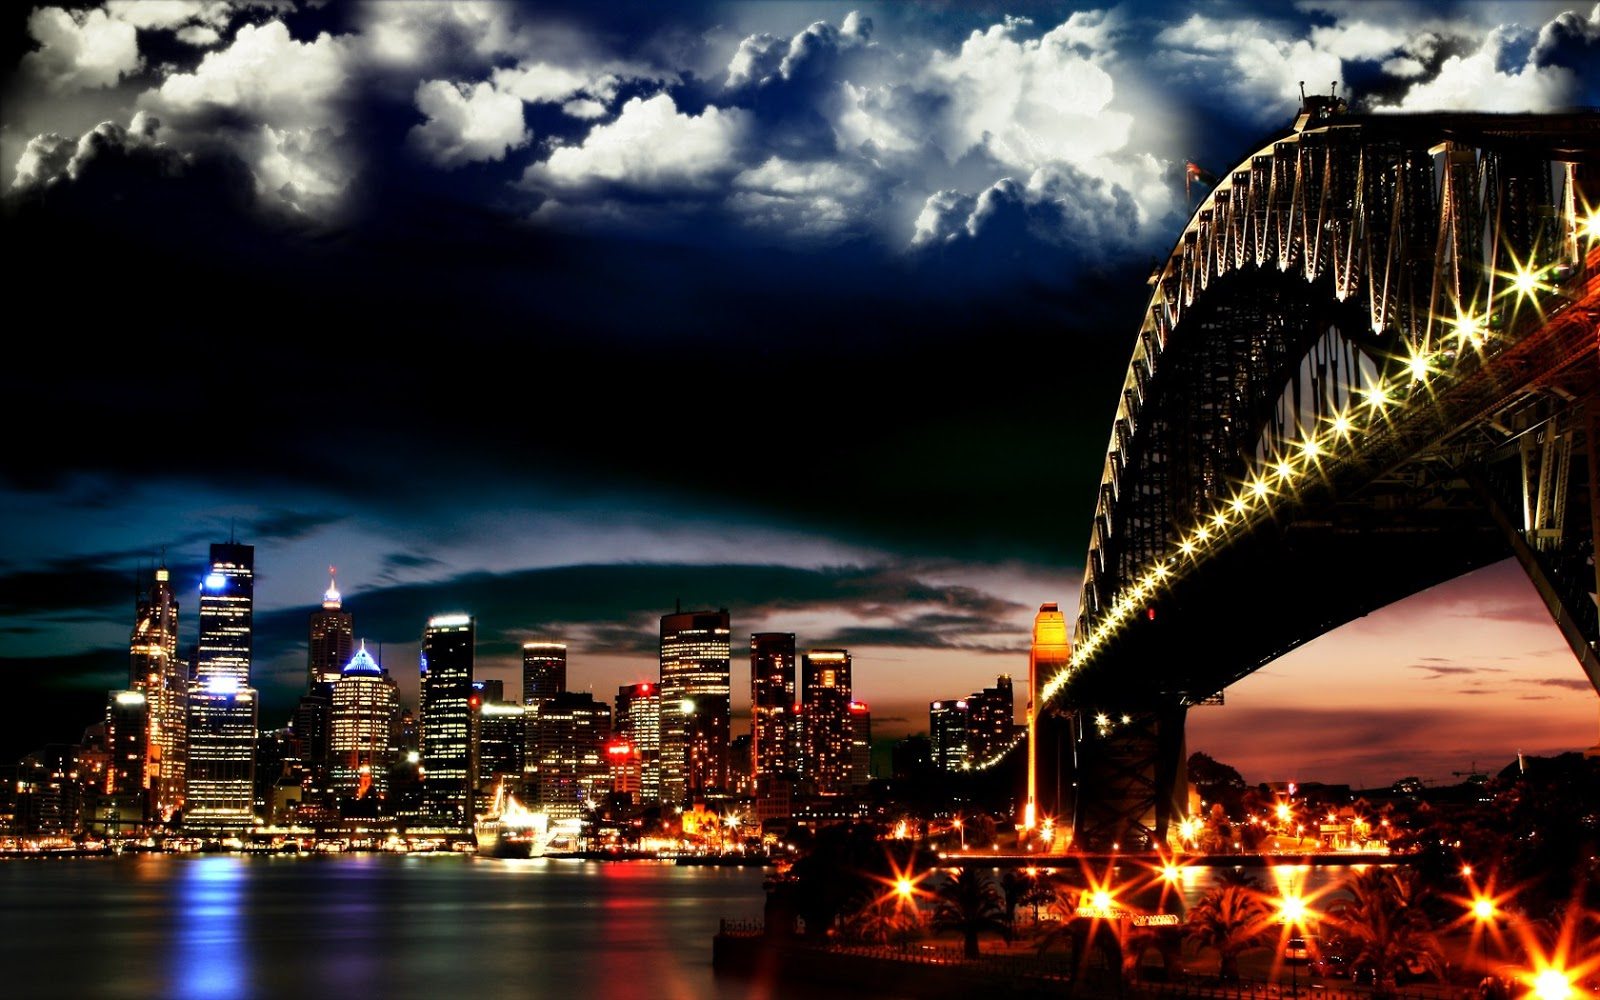 desktop background city - photo #34